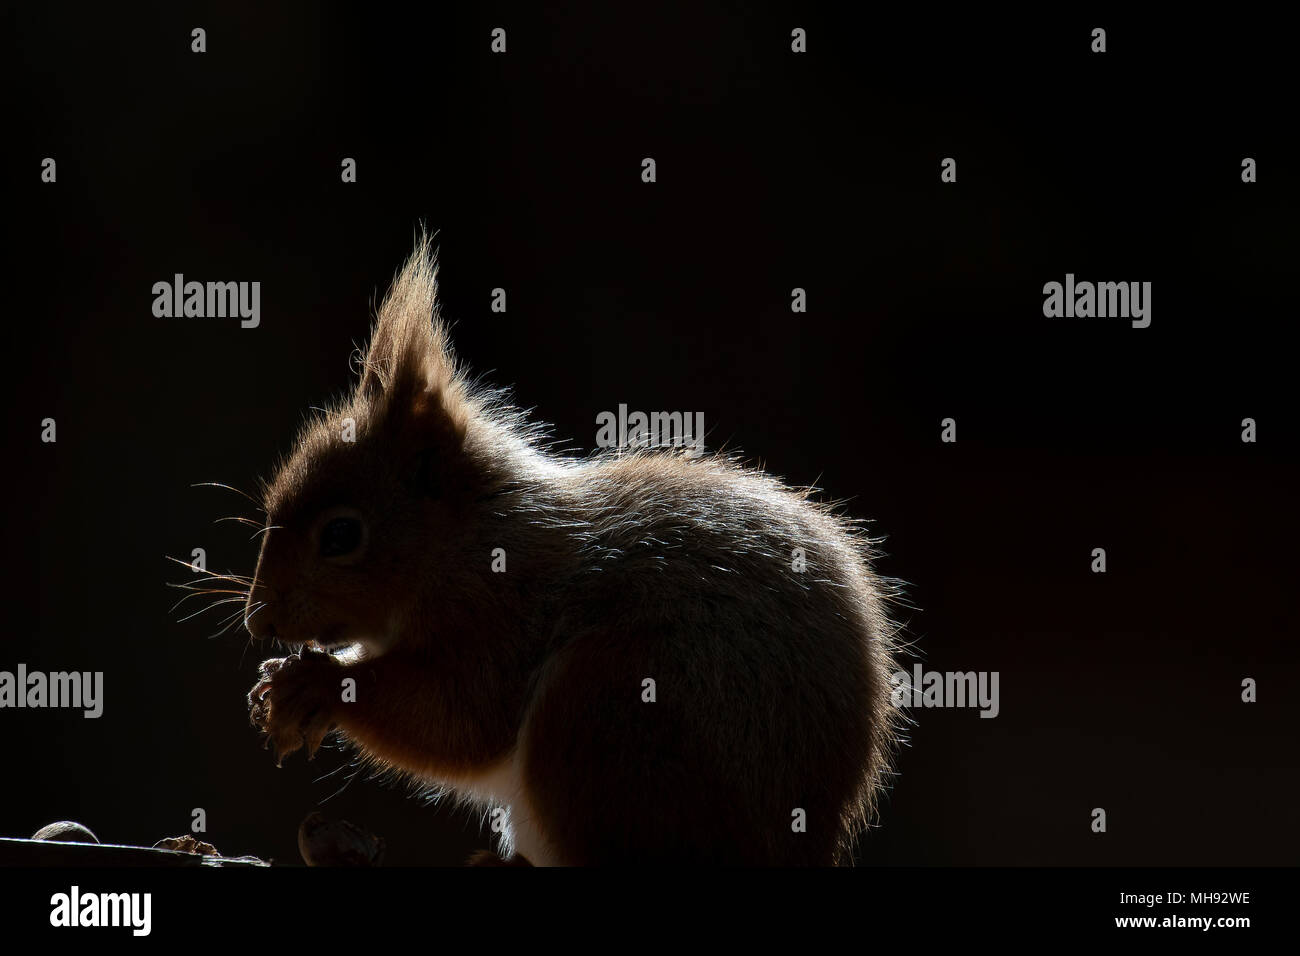 Red squirrel, Sciurus Vulgaris, silhouette sitting on heather and grass in the forests of cairngorms national, scotland eating nuts - Stock Image